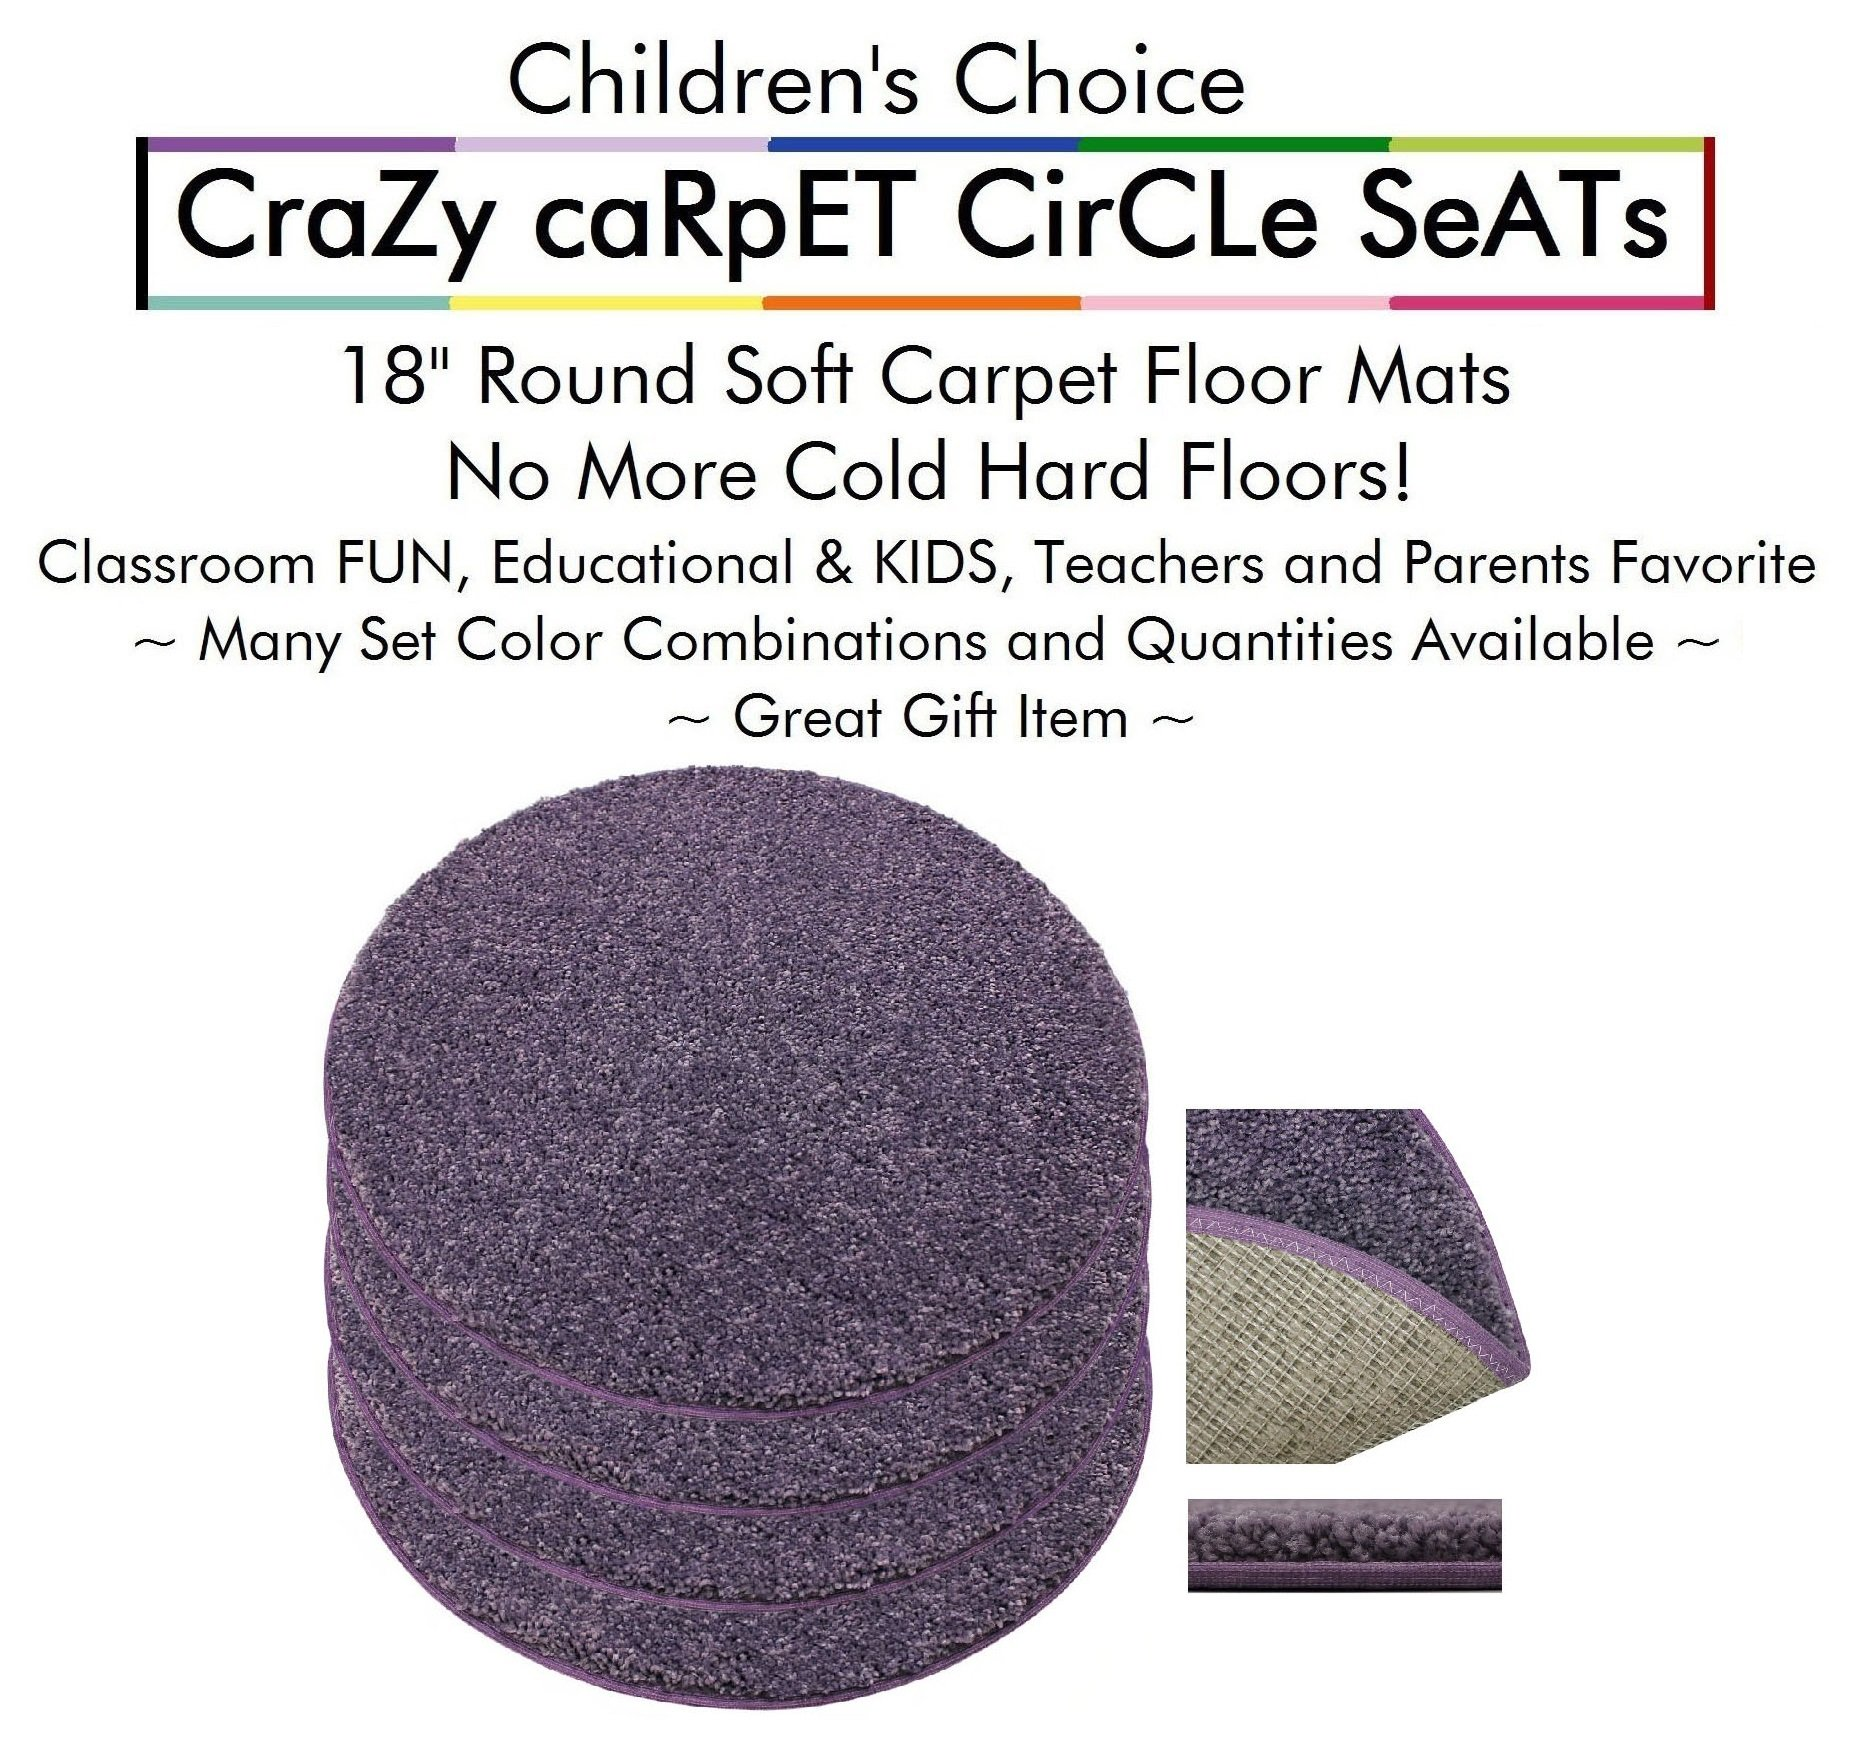 "Set 4 - Misty Lilac Kids CraZy CarPet CirCle SeaTs 18"" Round Soft Warm Floor Mat - Cushions 